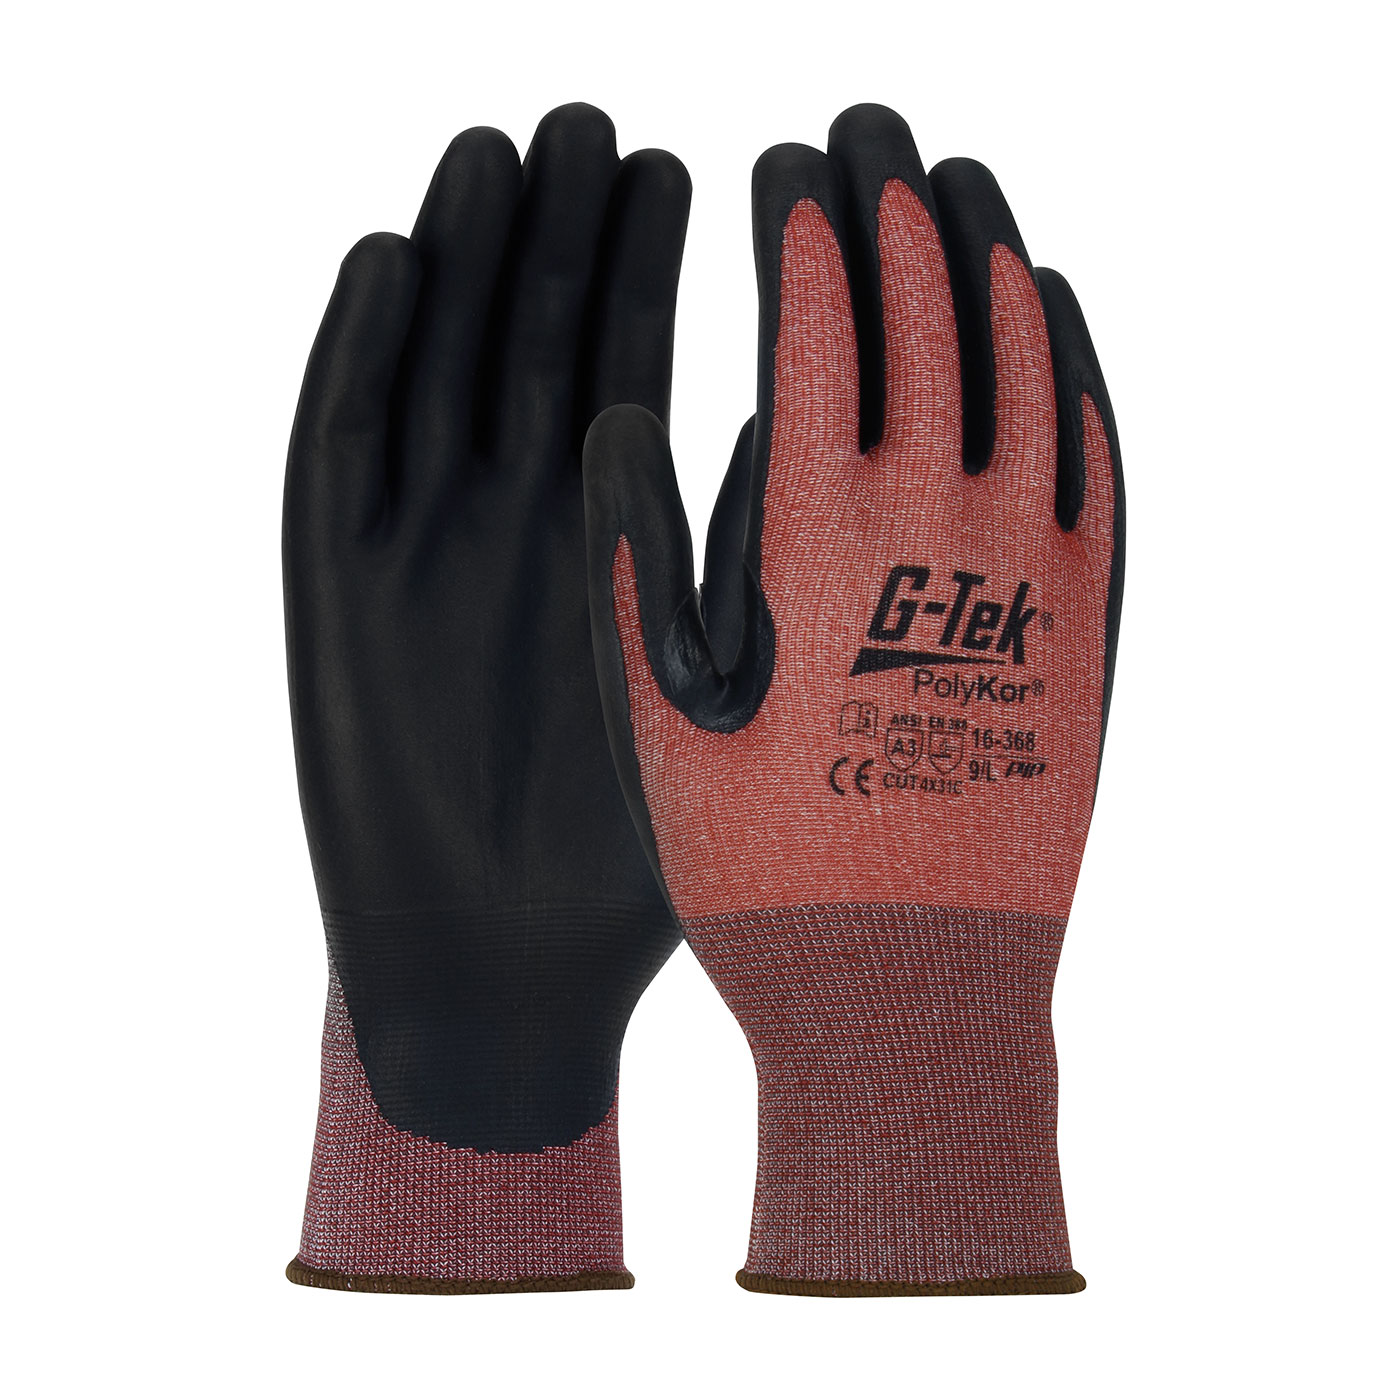 PIPR 16-368/S Seamless Knit PolyKor® X7™ Blended Glove with NeoFoam® Coated Palm & Fingers - Touchscreen Compatible